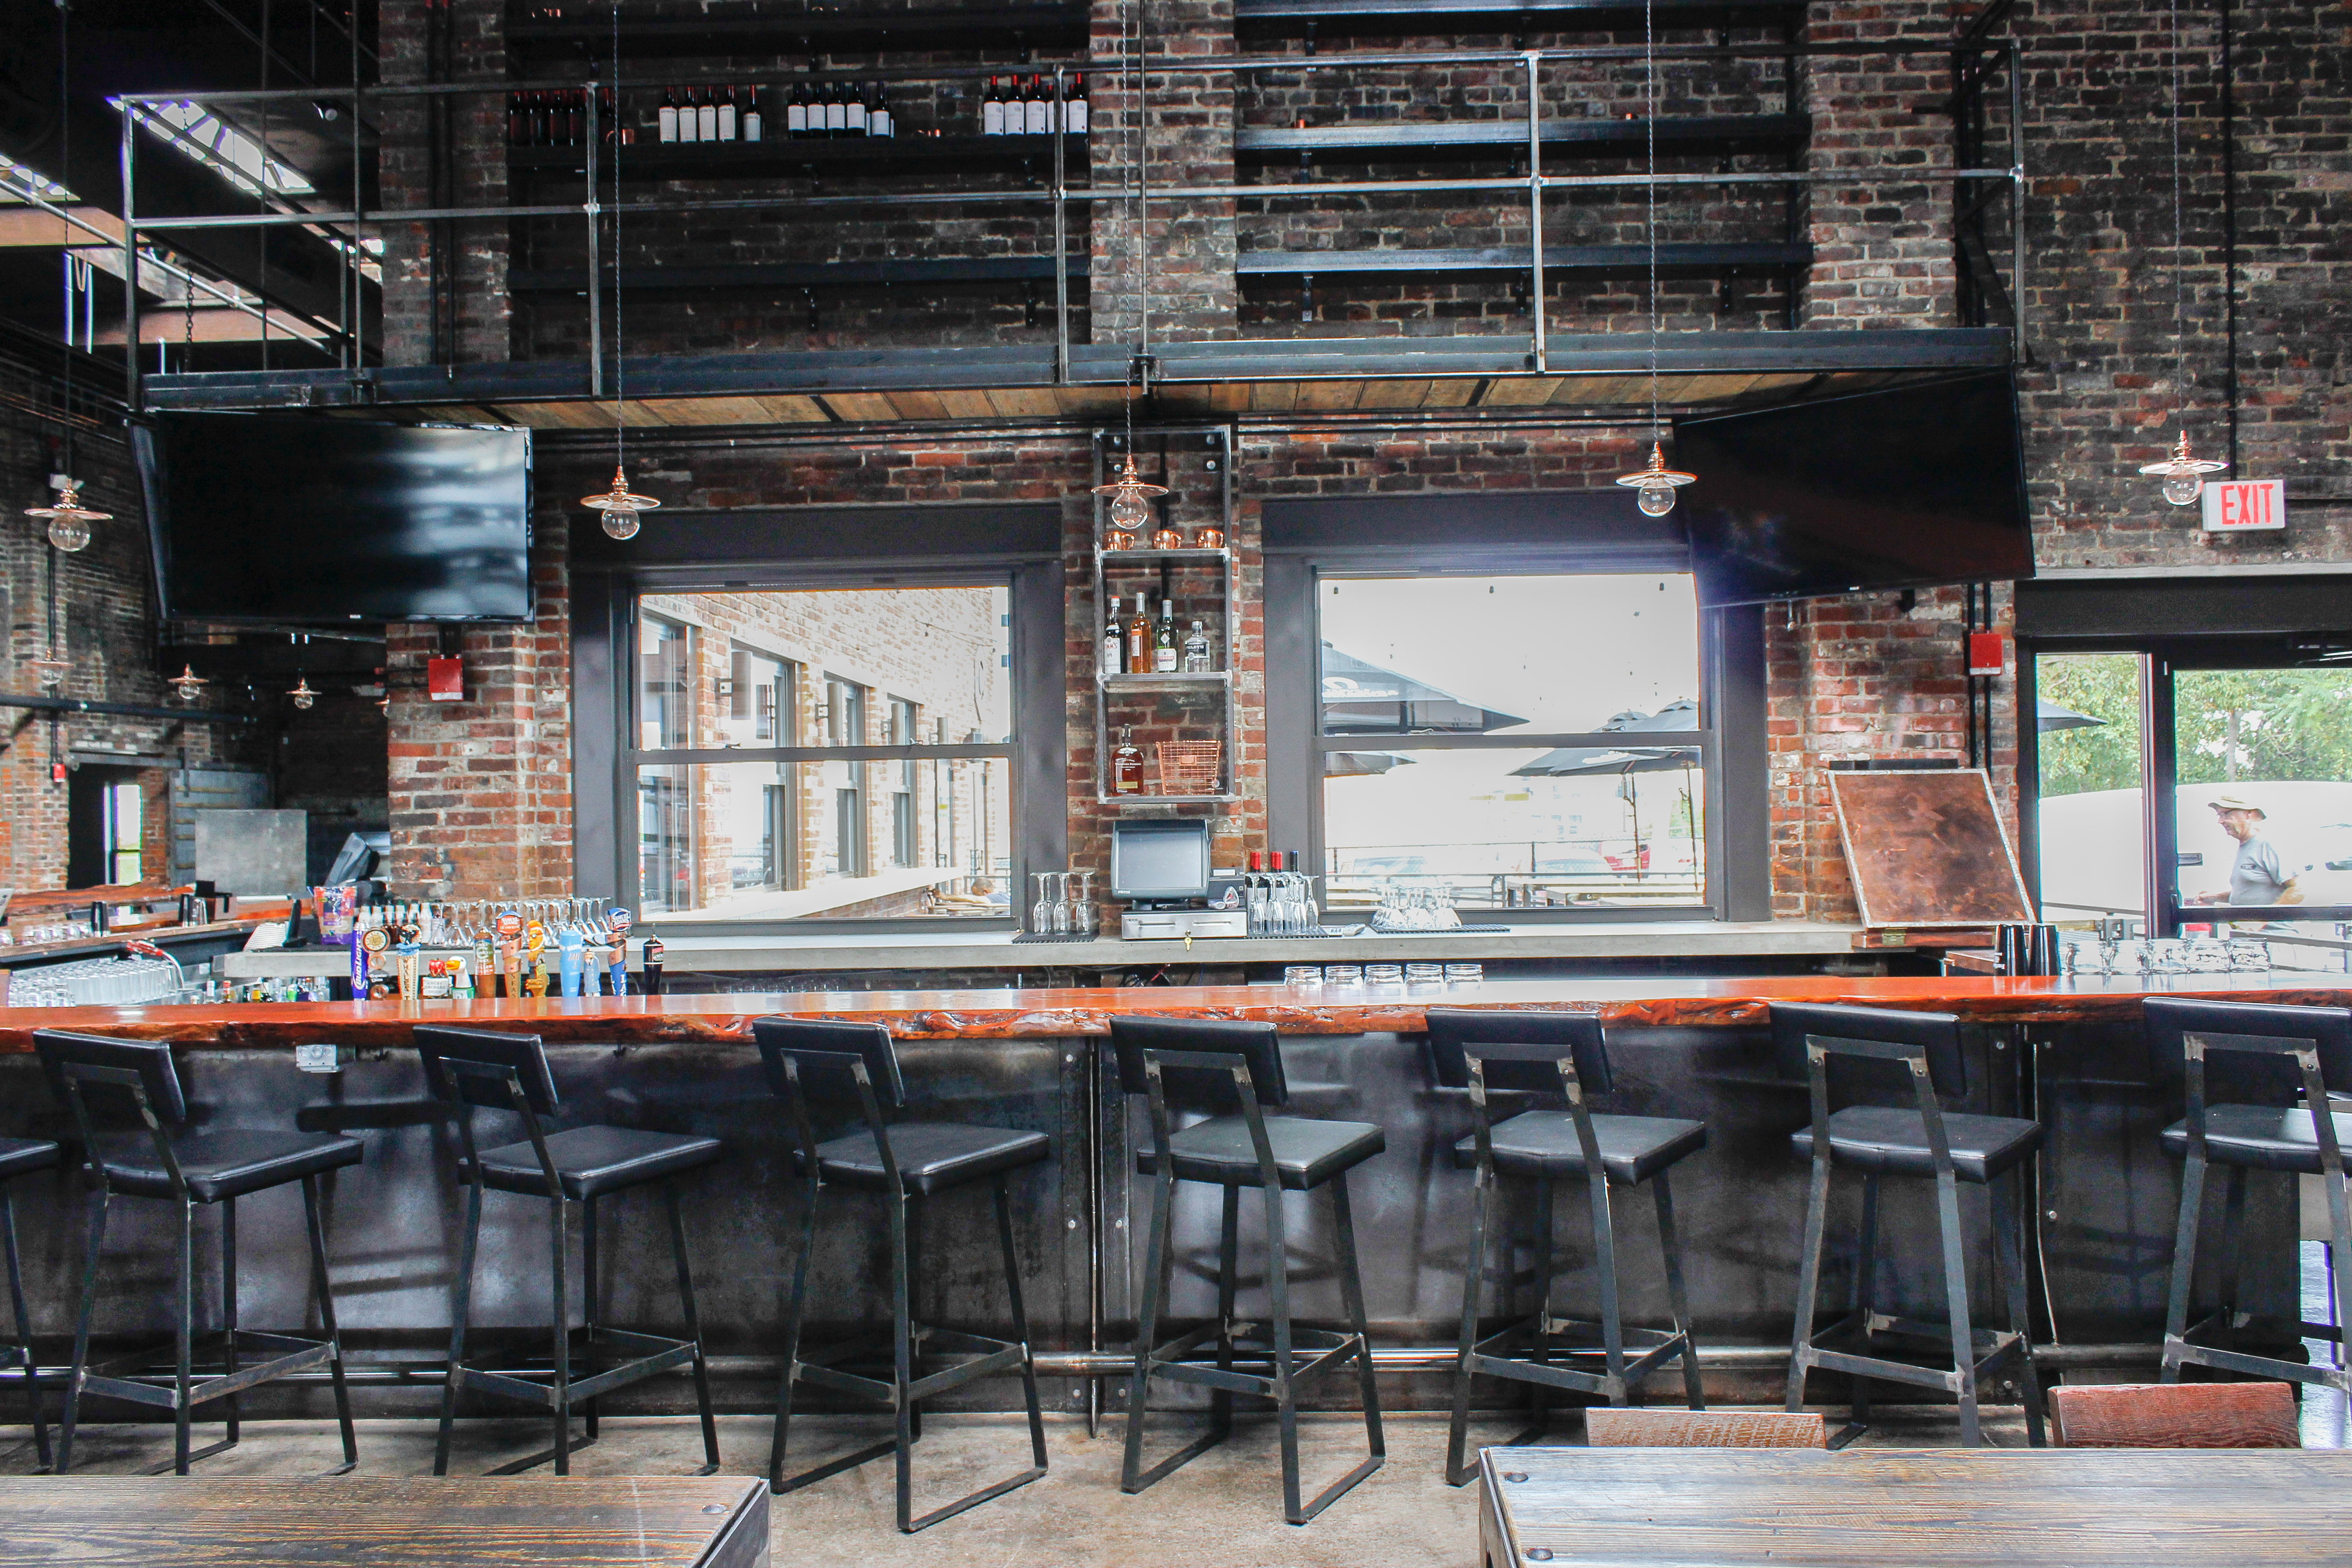 An industrial bar space, with wooden accents, lit by the sun shining through big windows on the back wall.